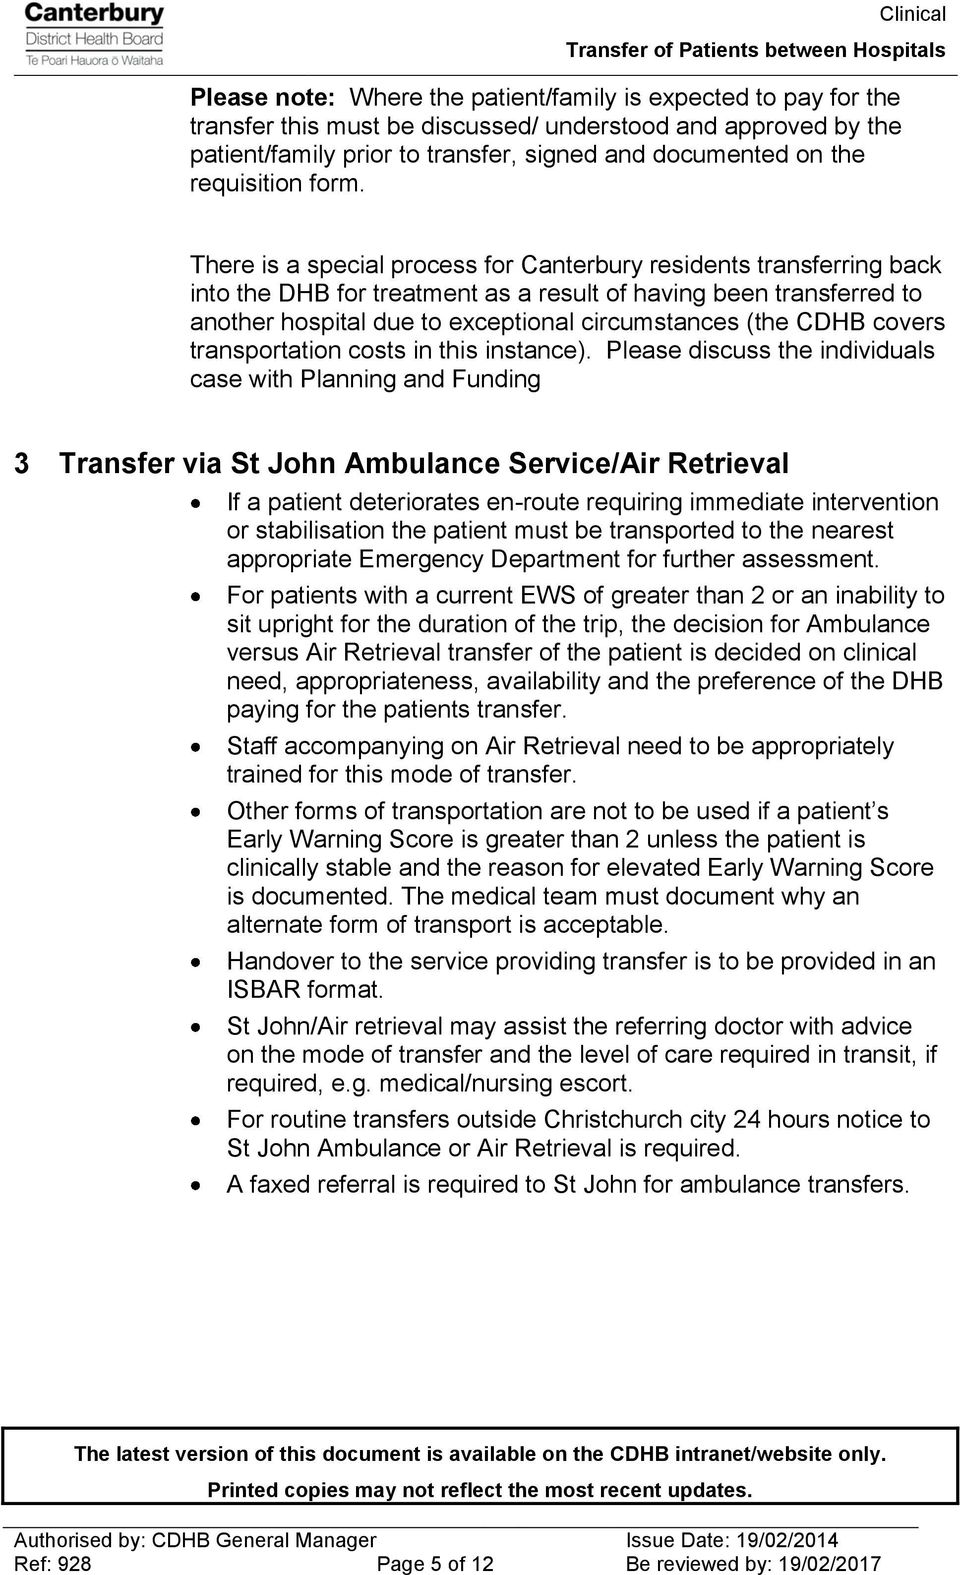 There is a special process for Canterbury residents transferring back into the DHB for treatment as a result of having been transferred to another hospital due to exceptional circumstances (the CDHB